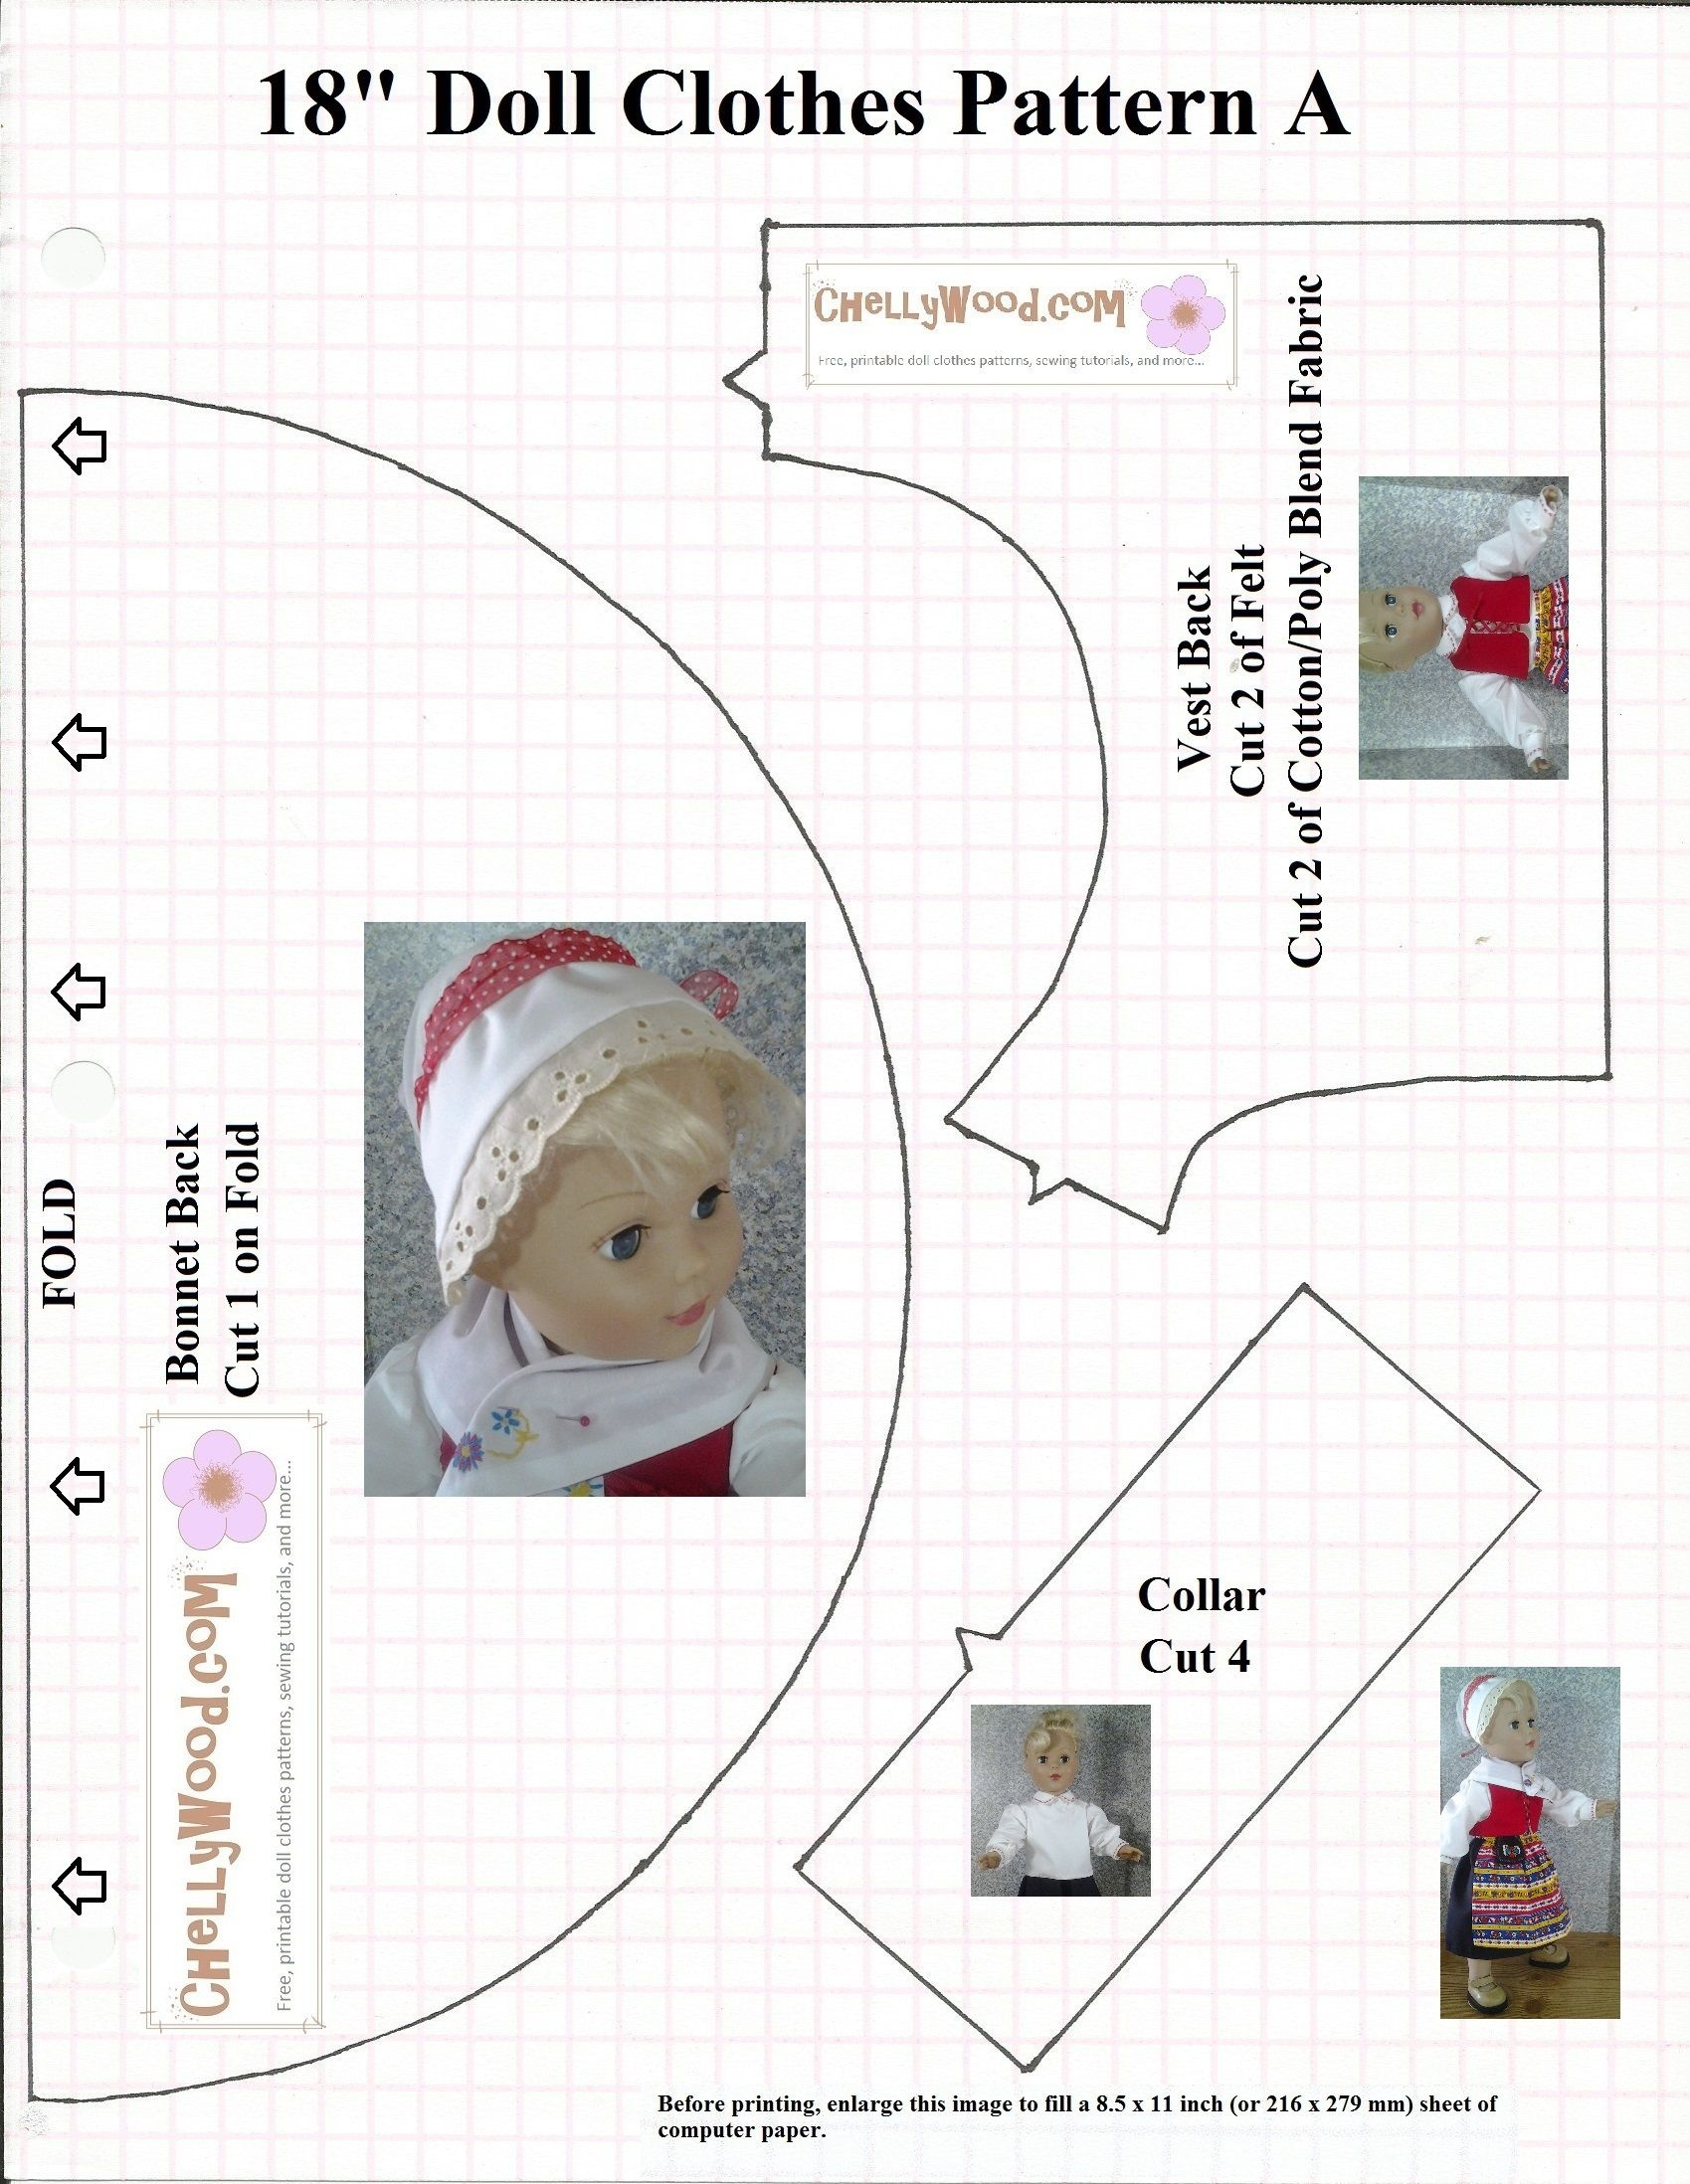 """Free Traditional Swedish Outfit Pattern For 18"""" Dolls - Bonnet - 18 Inch Doll Clothes Patterns Free Printable"""